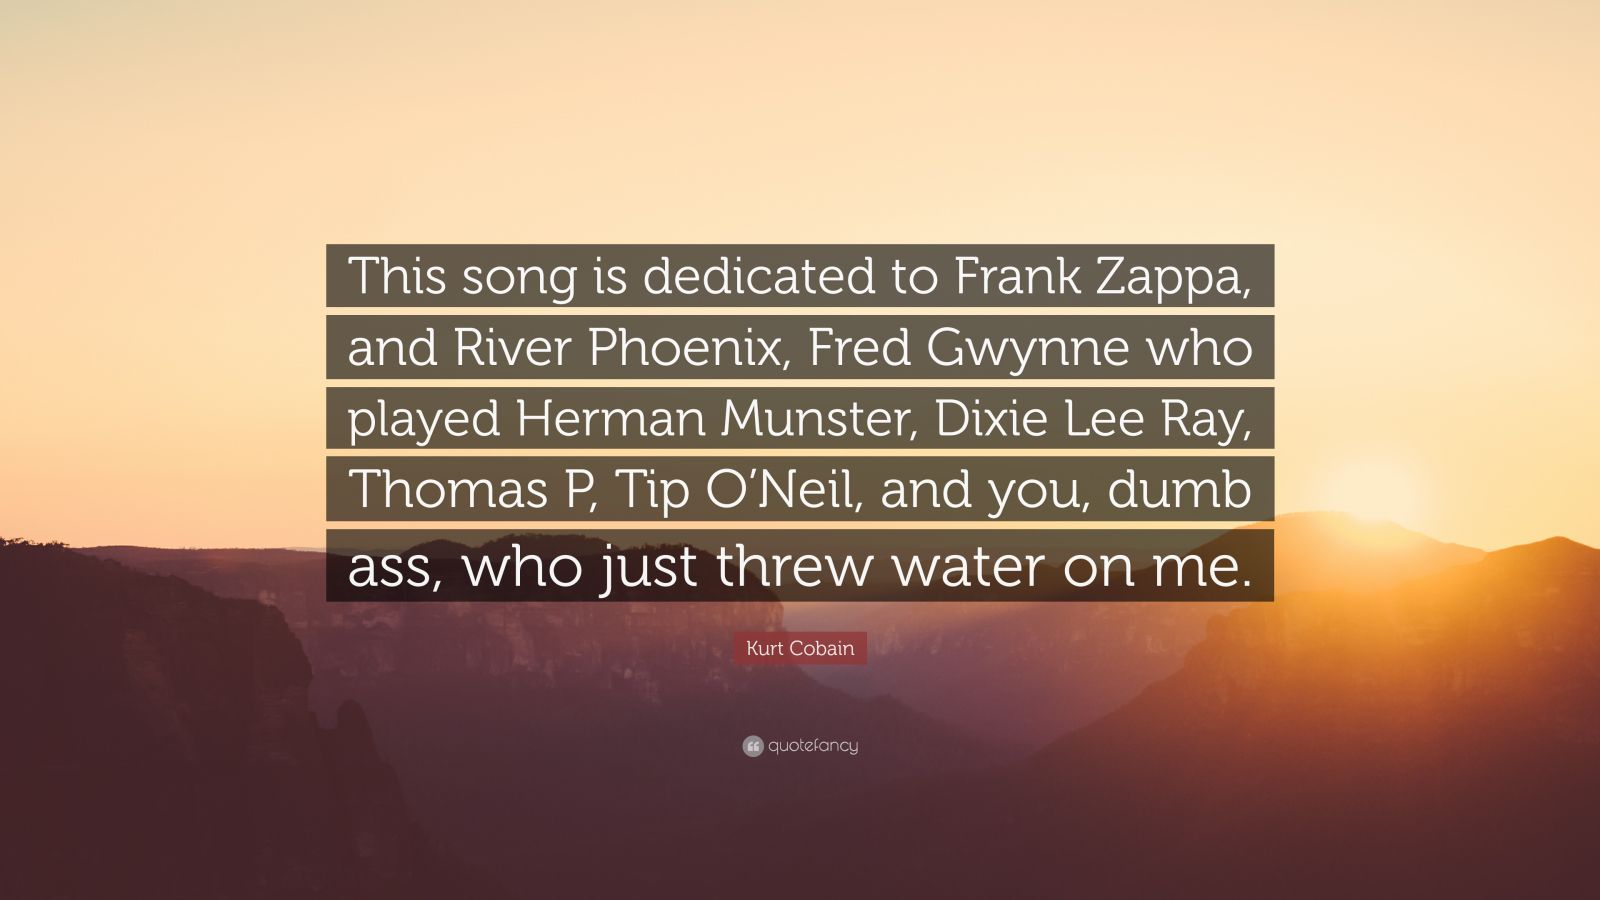 """Kurt Cobain Quote: """"This song is dedicated to Frank Zappa, and River Phoenix, Fred Gwynne who played Herman Munster, Dixie Lee Ray, Thomas P, Tip O'Neil, and you, dumb ass, who just threw water on me."""""""